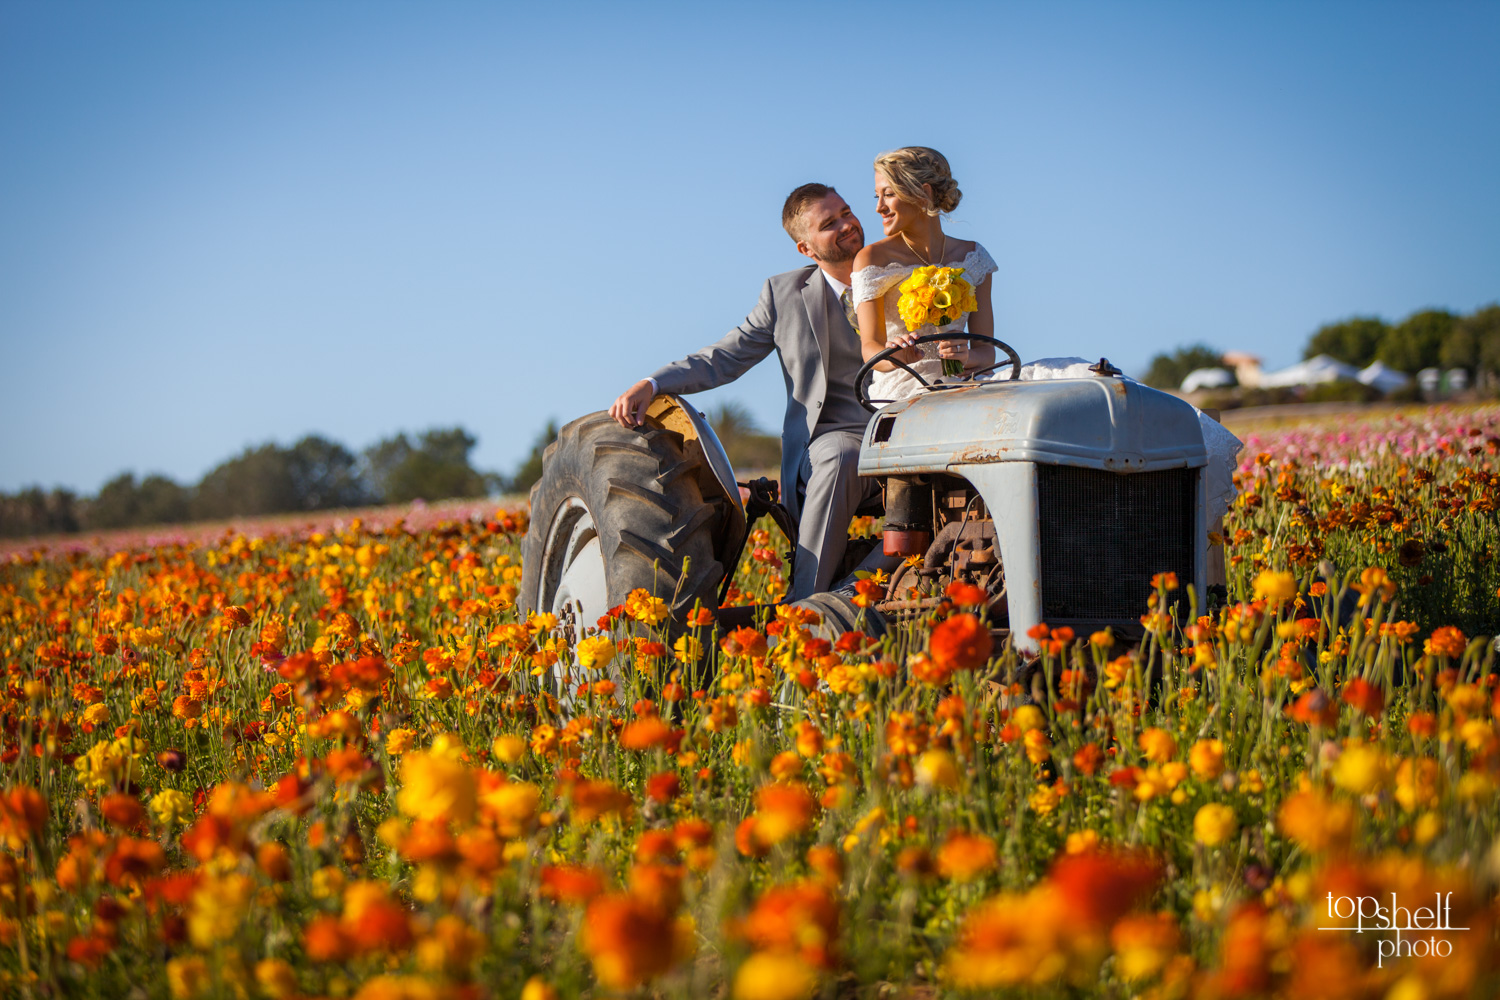 carlsbad-flower-fields-wedding-san-diego-top-shelf-photo-10.jpg